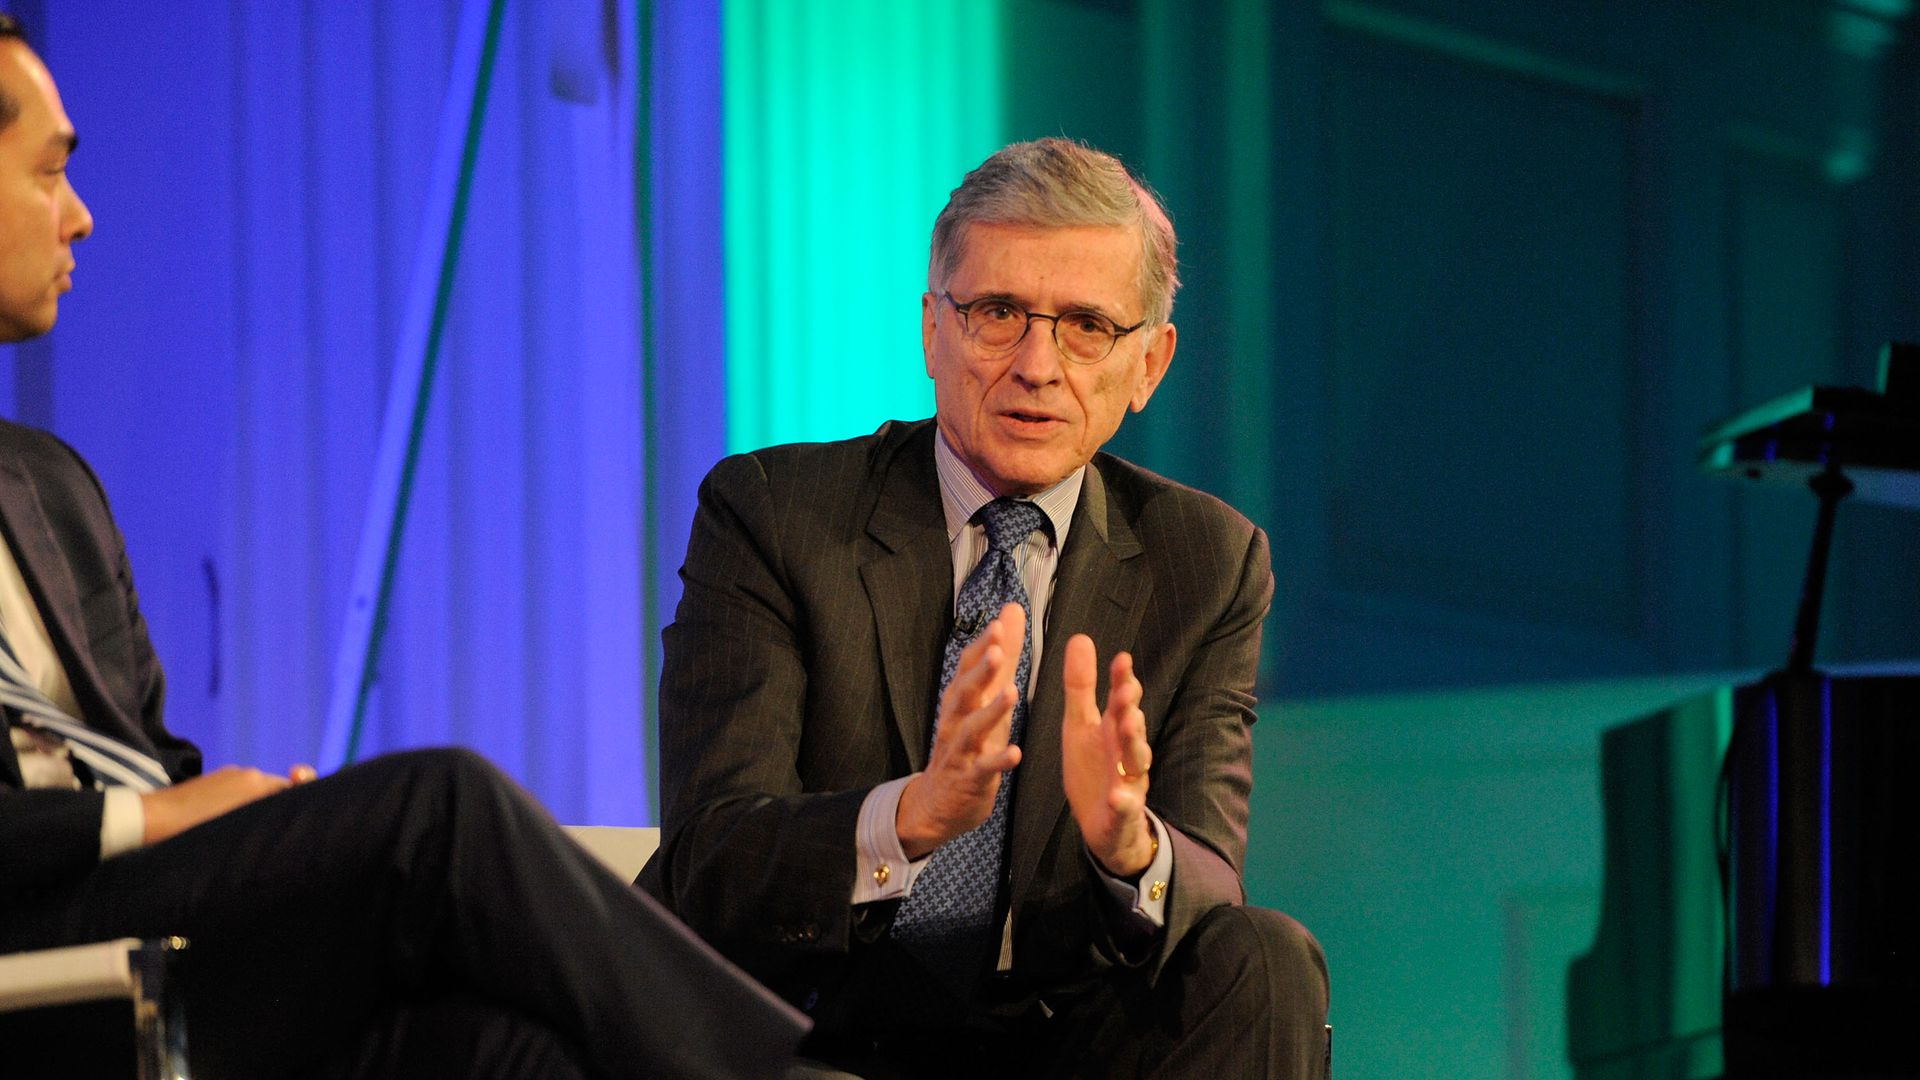 Tom Wheeler on stage in a suit